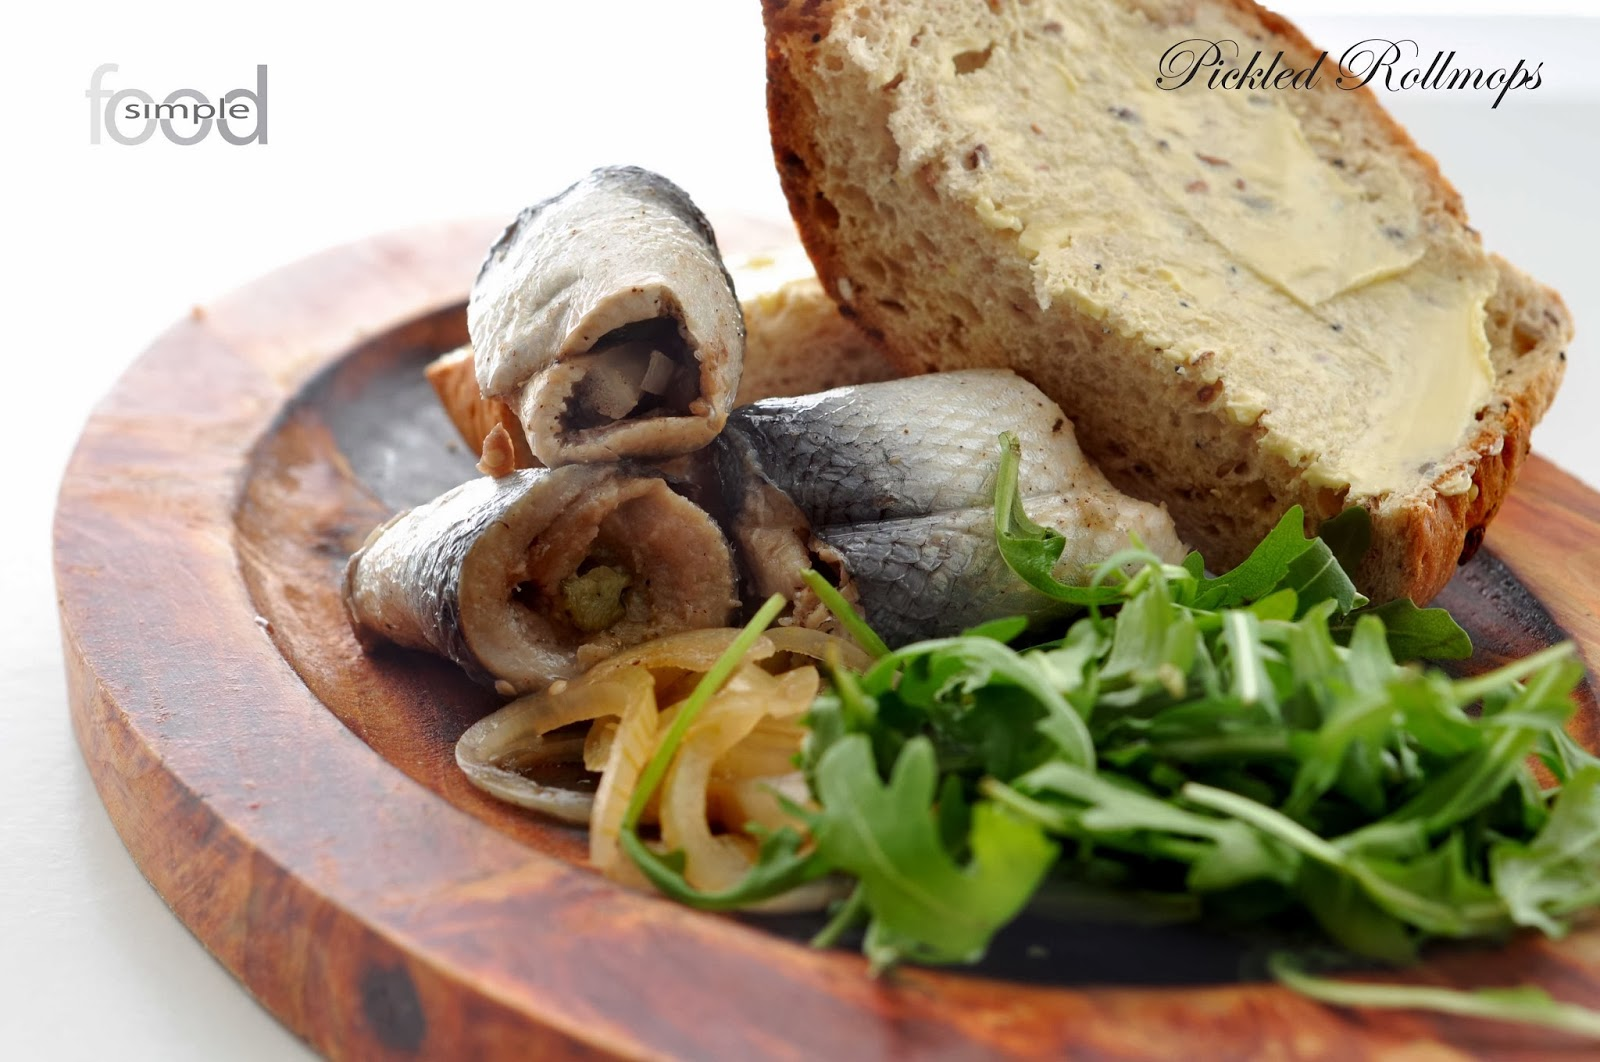 Pickled Rollmops ~ Simple Food